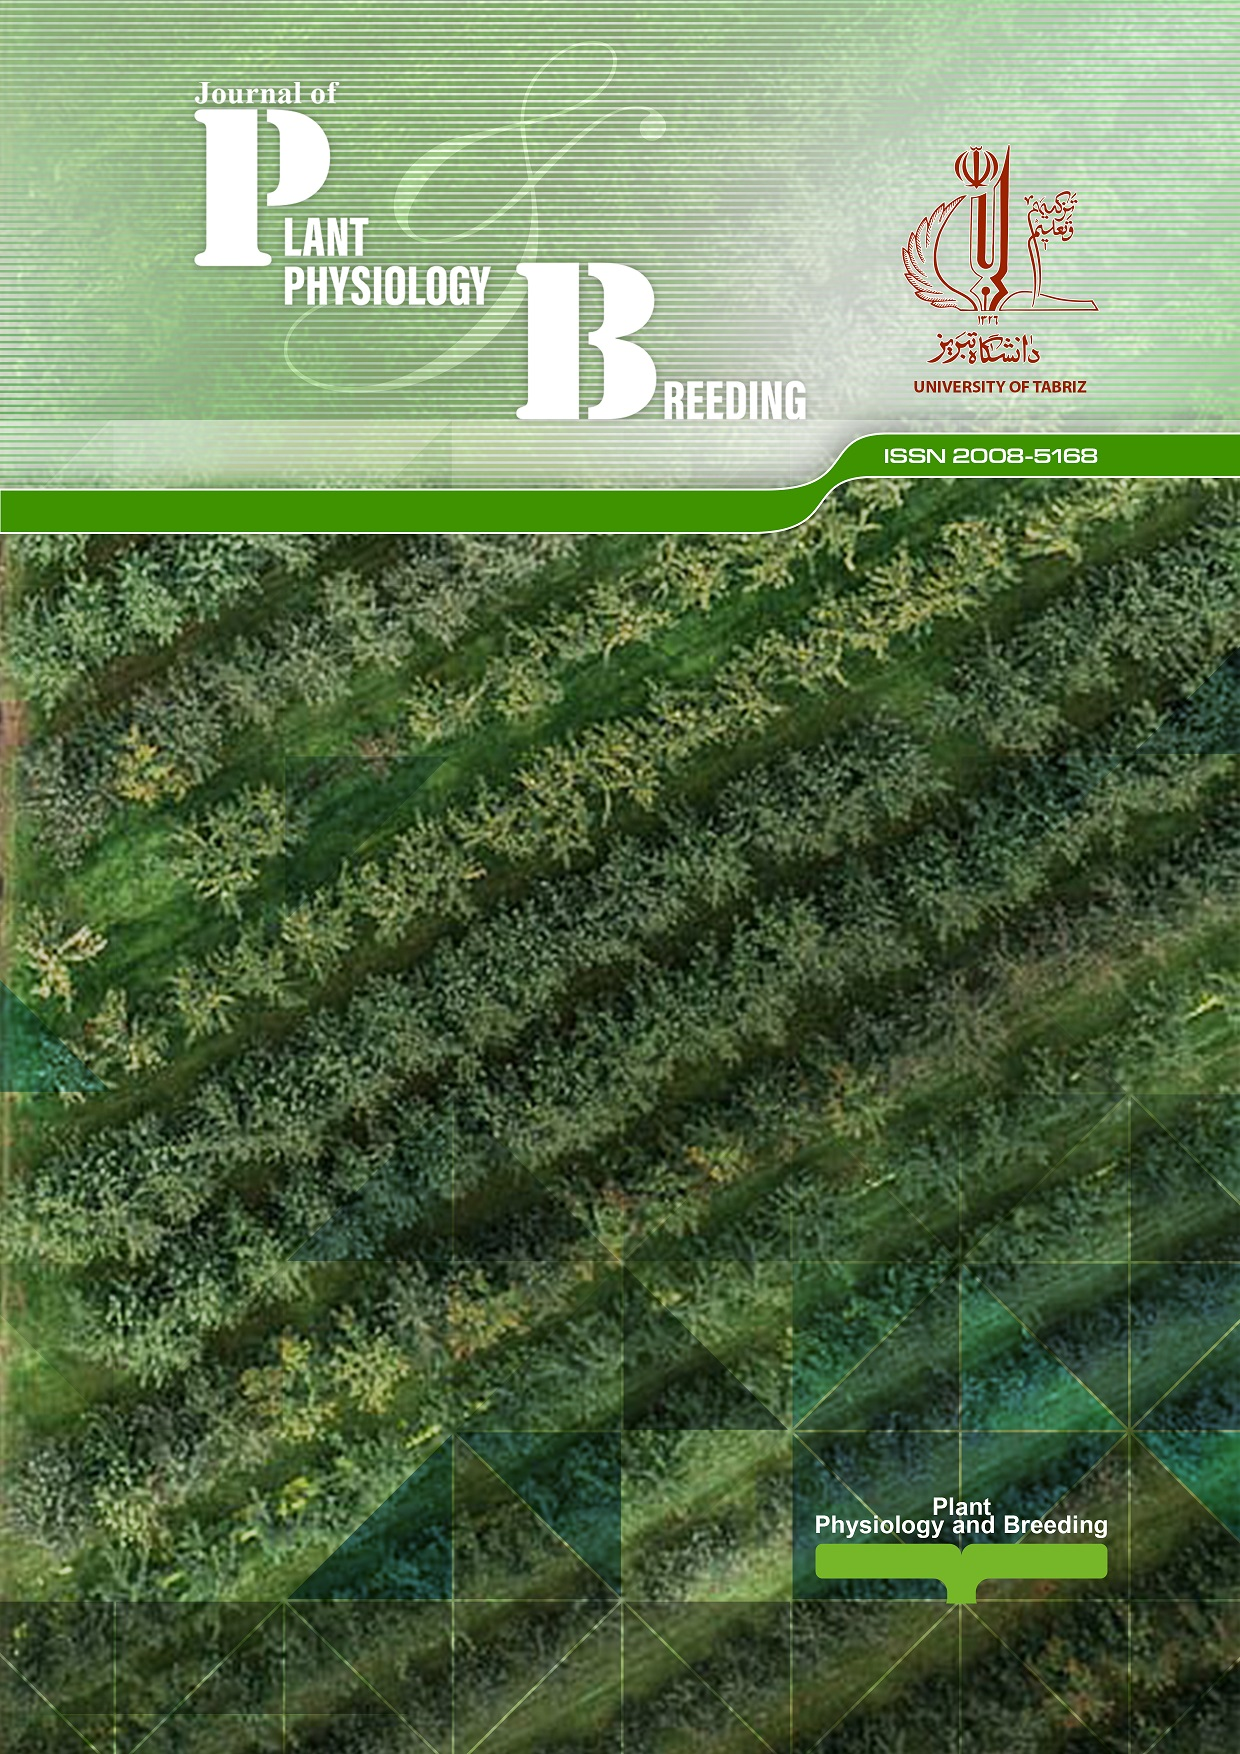 Journal of Plant Physiology and Breeding